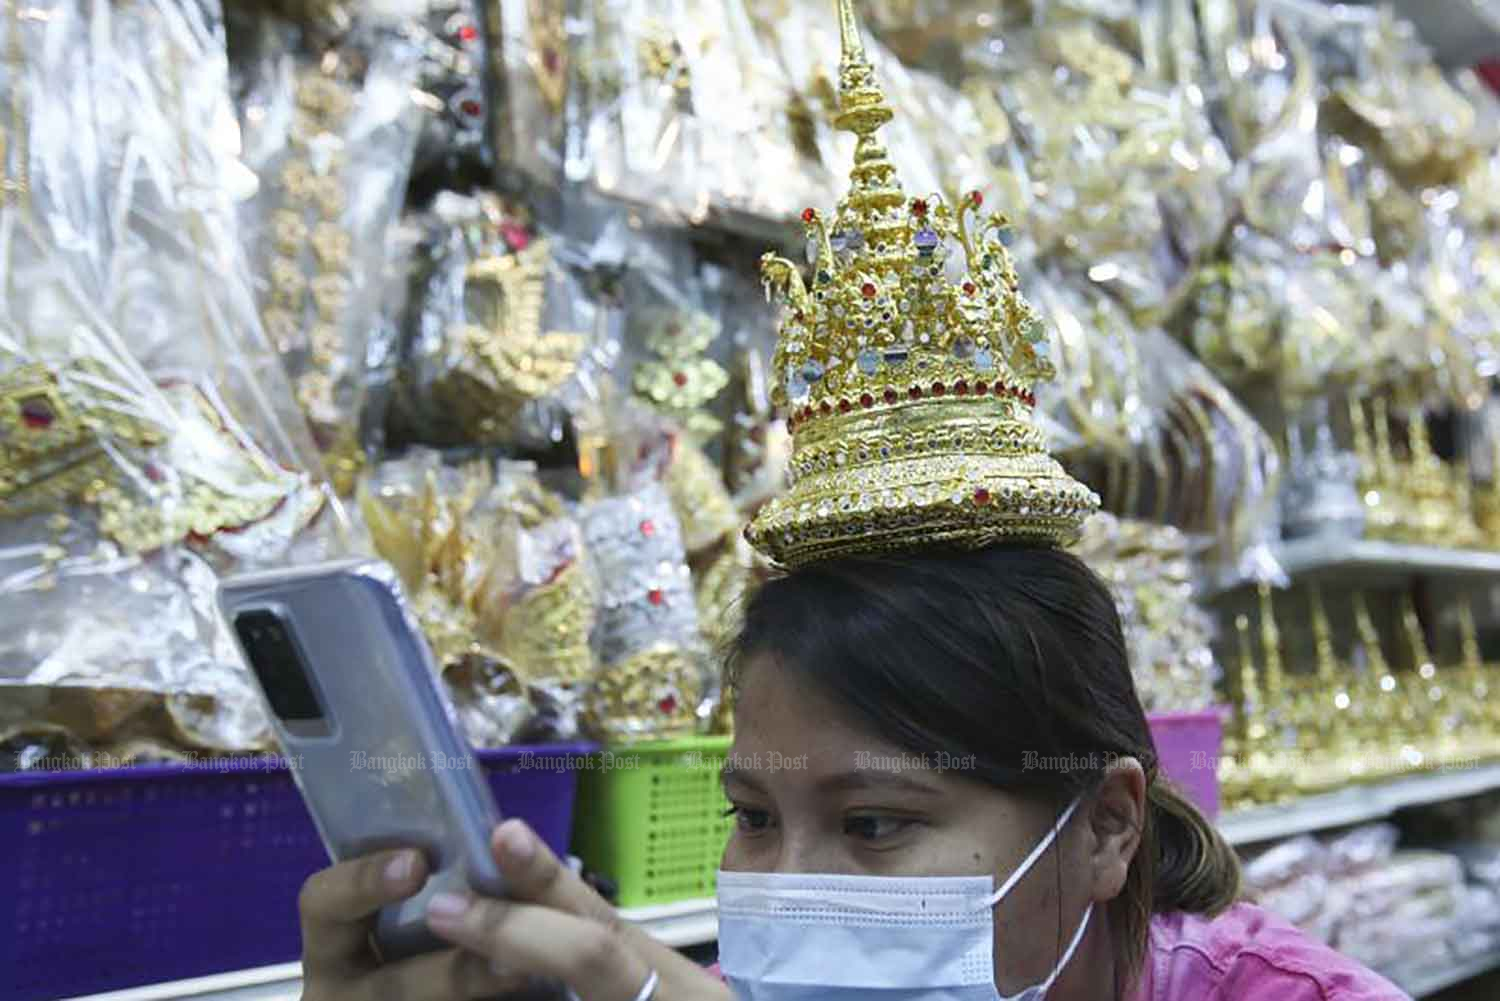 A woman looks at herself wearing 'rad klao' headgear while shopping in the Sam Peng area of Bangkok on Monday. Replicas of the headgear - similar to that featured by Thai-born K-pop singer Lalisa 'Lisa' Manoban of the girl group Blackpink, in her latest music video sensation - are selling like hot cakes. (Photo: Pattarapong Chatpattarasill)